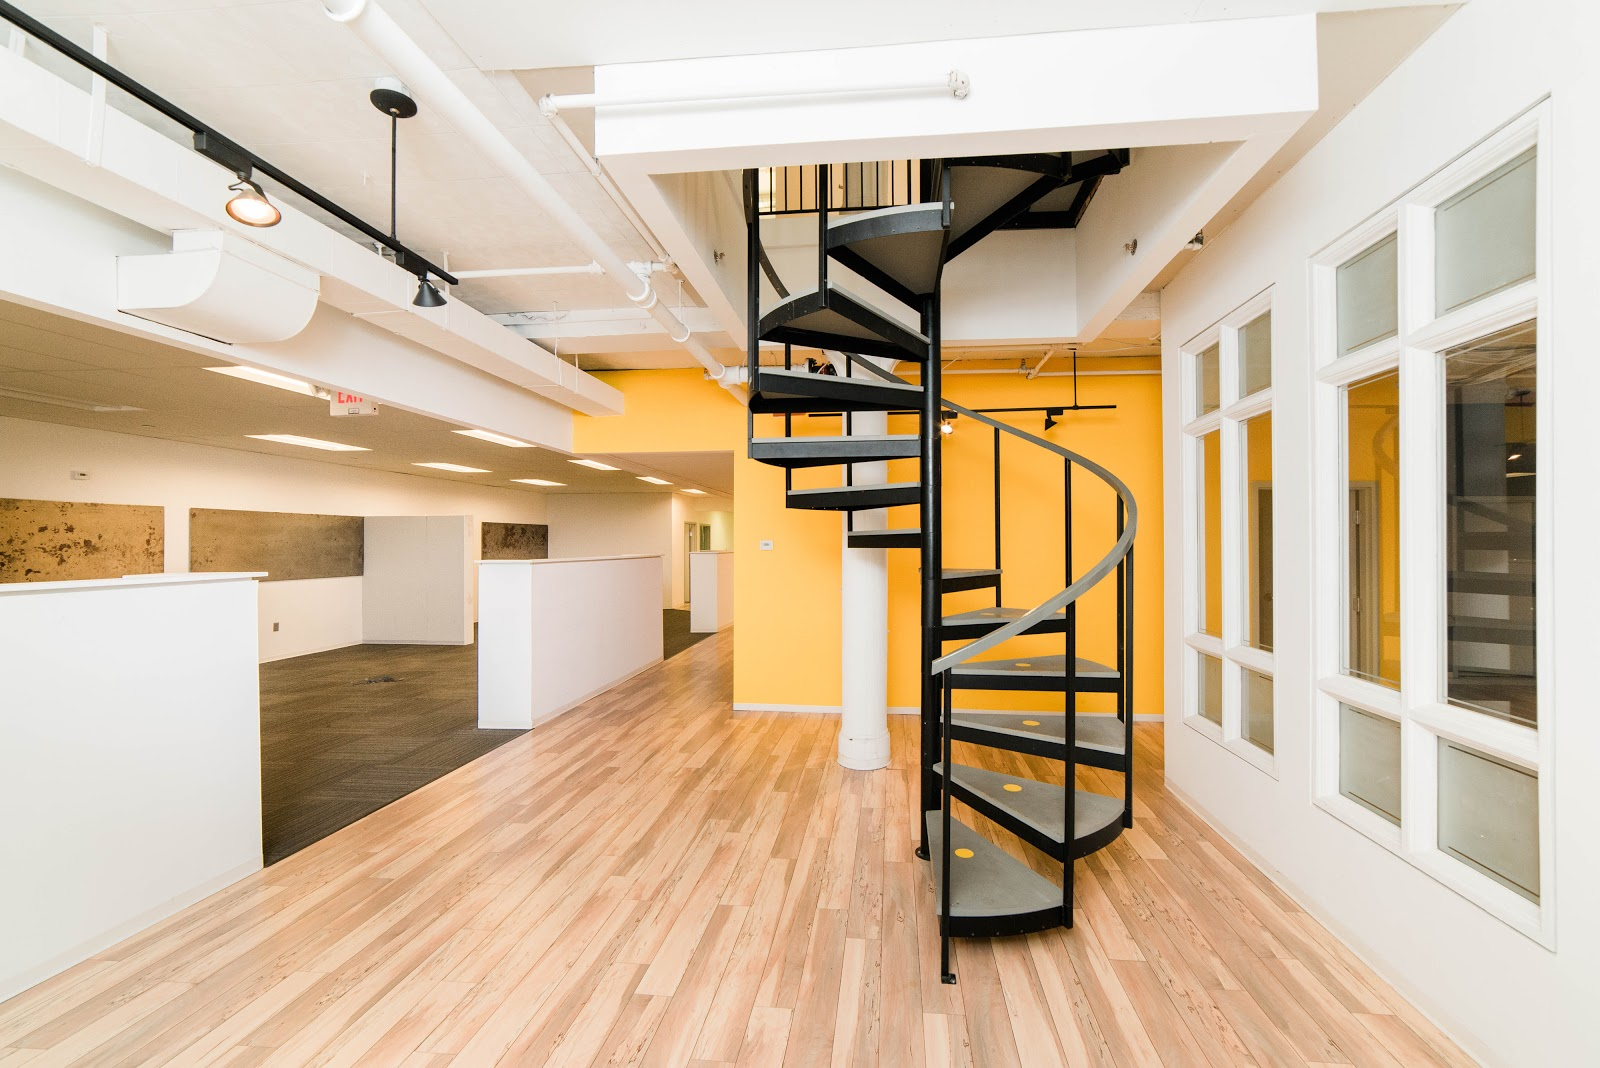 interior photo of office space with spiral staircase